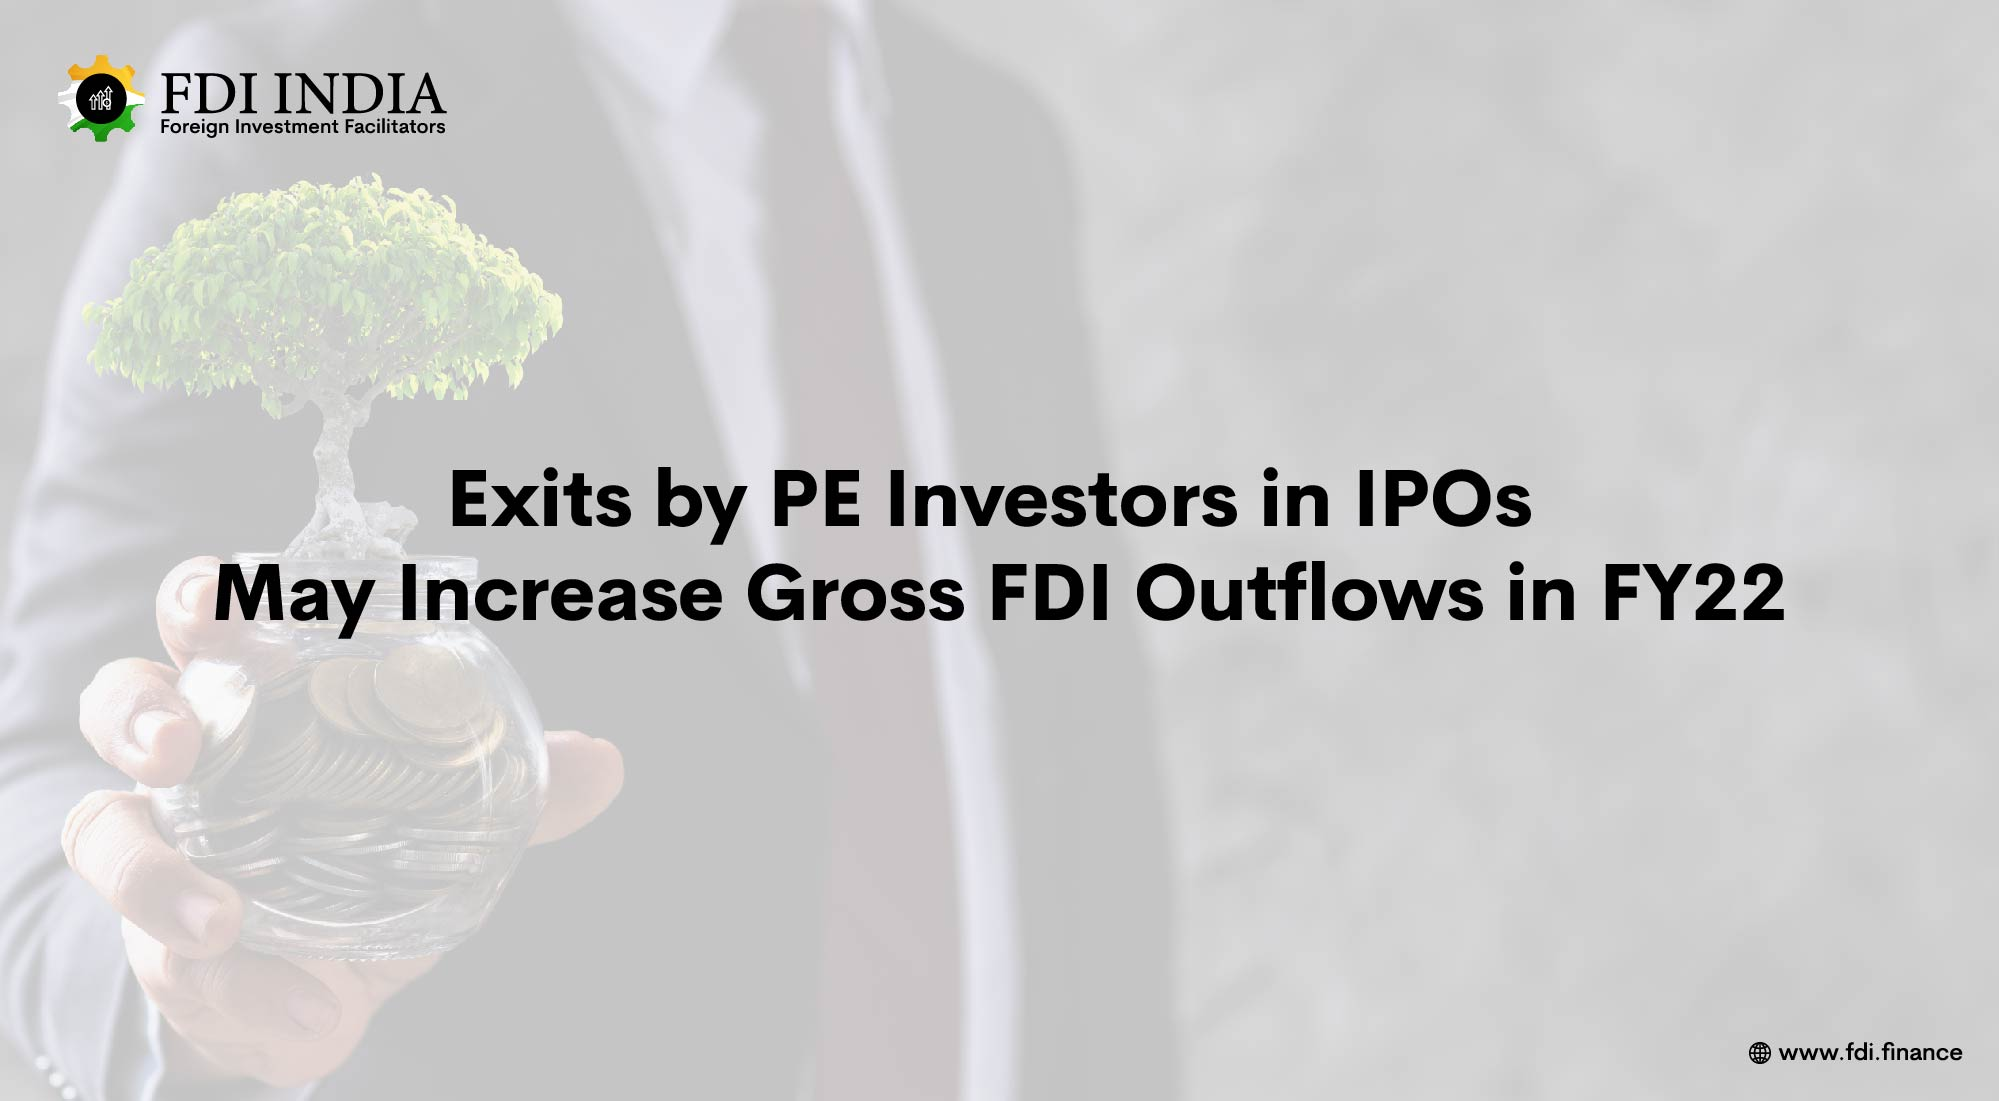 Exits by PE Investors in IPOs May Increase Gross FDI Outflows in FY22